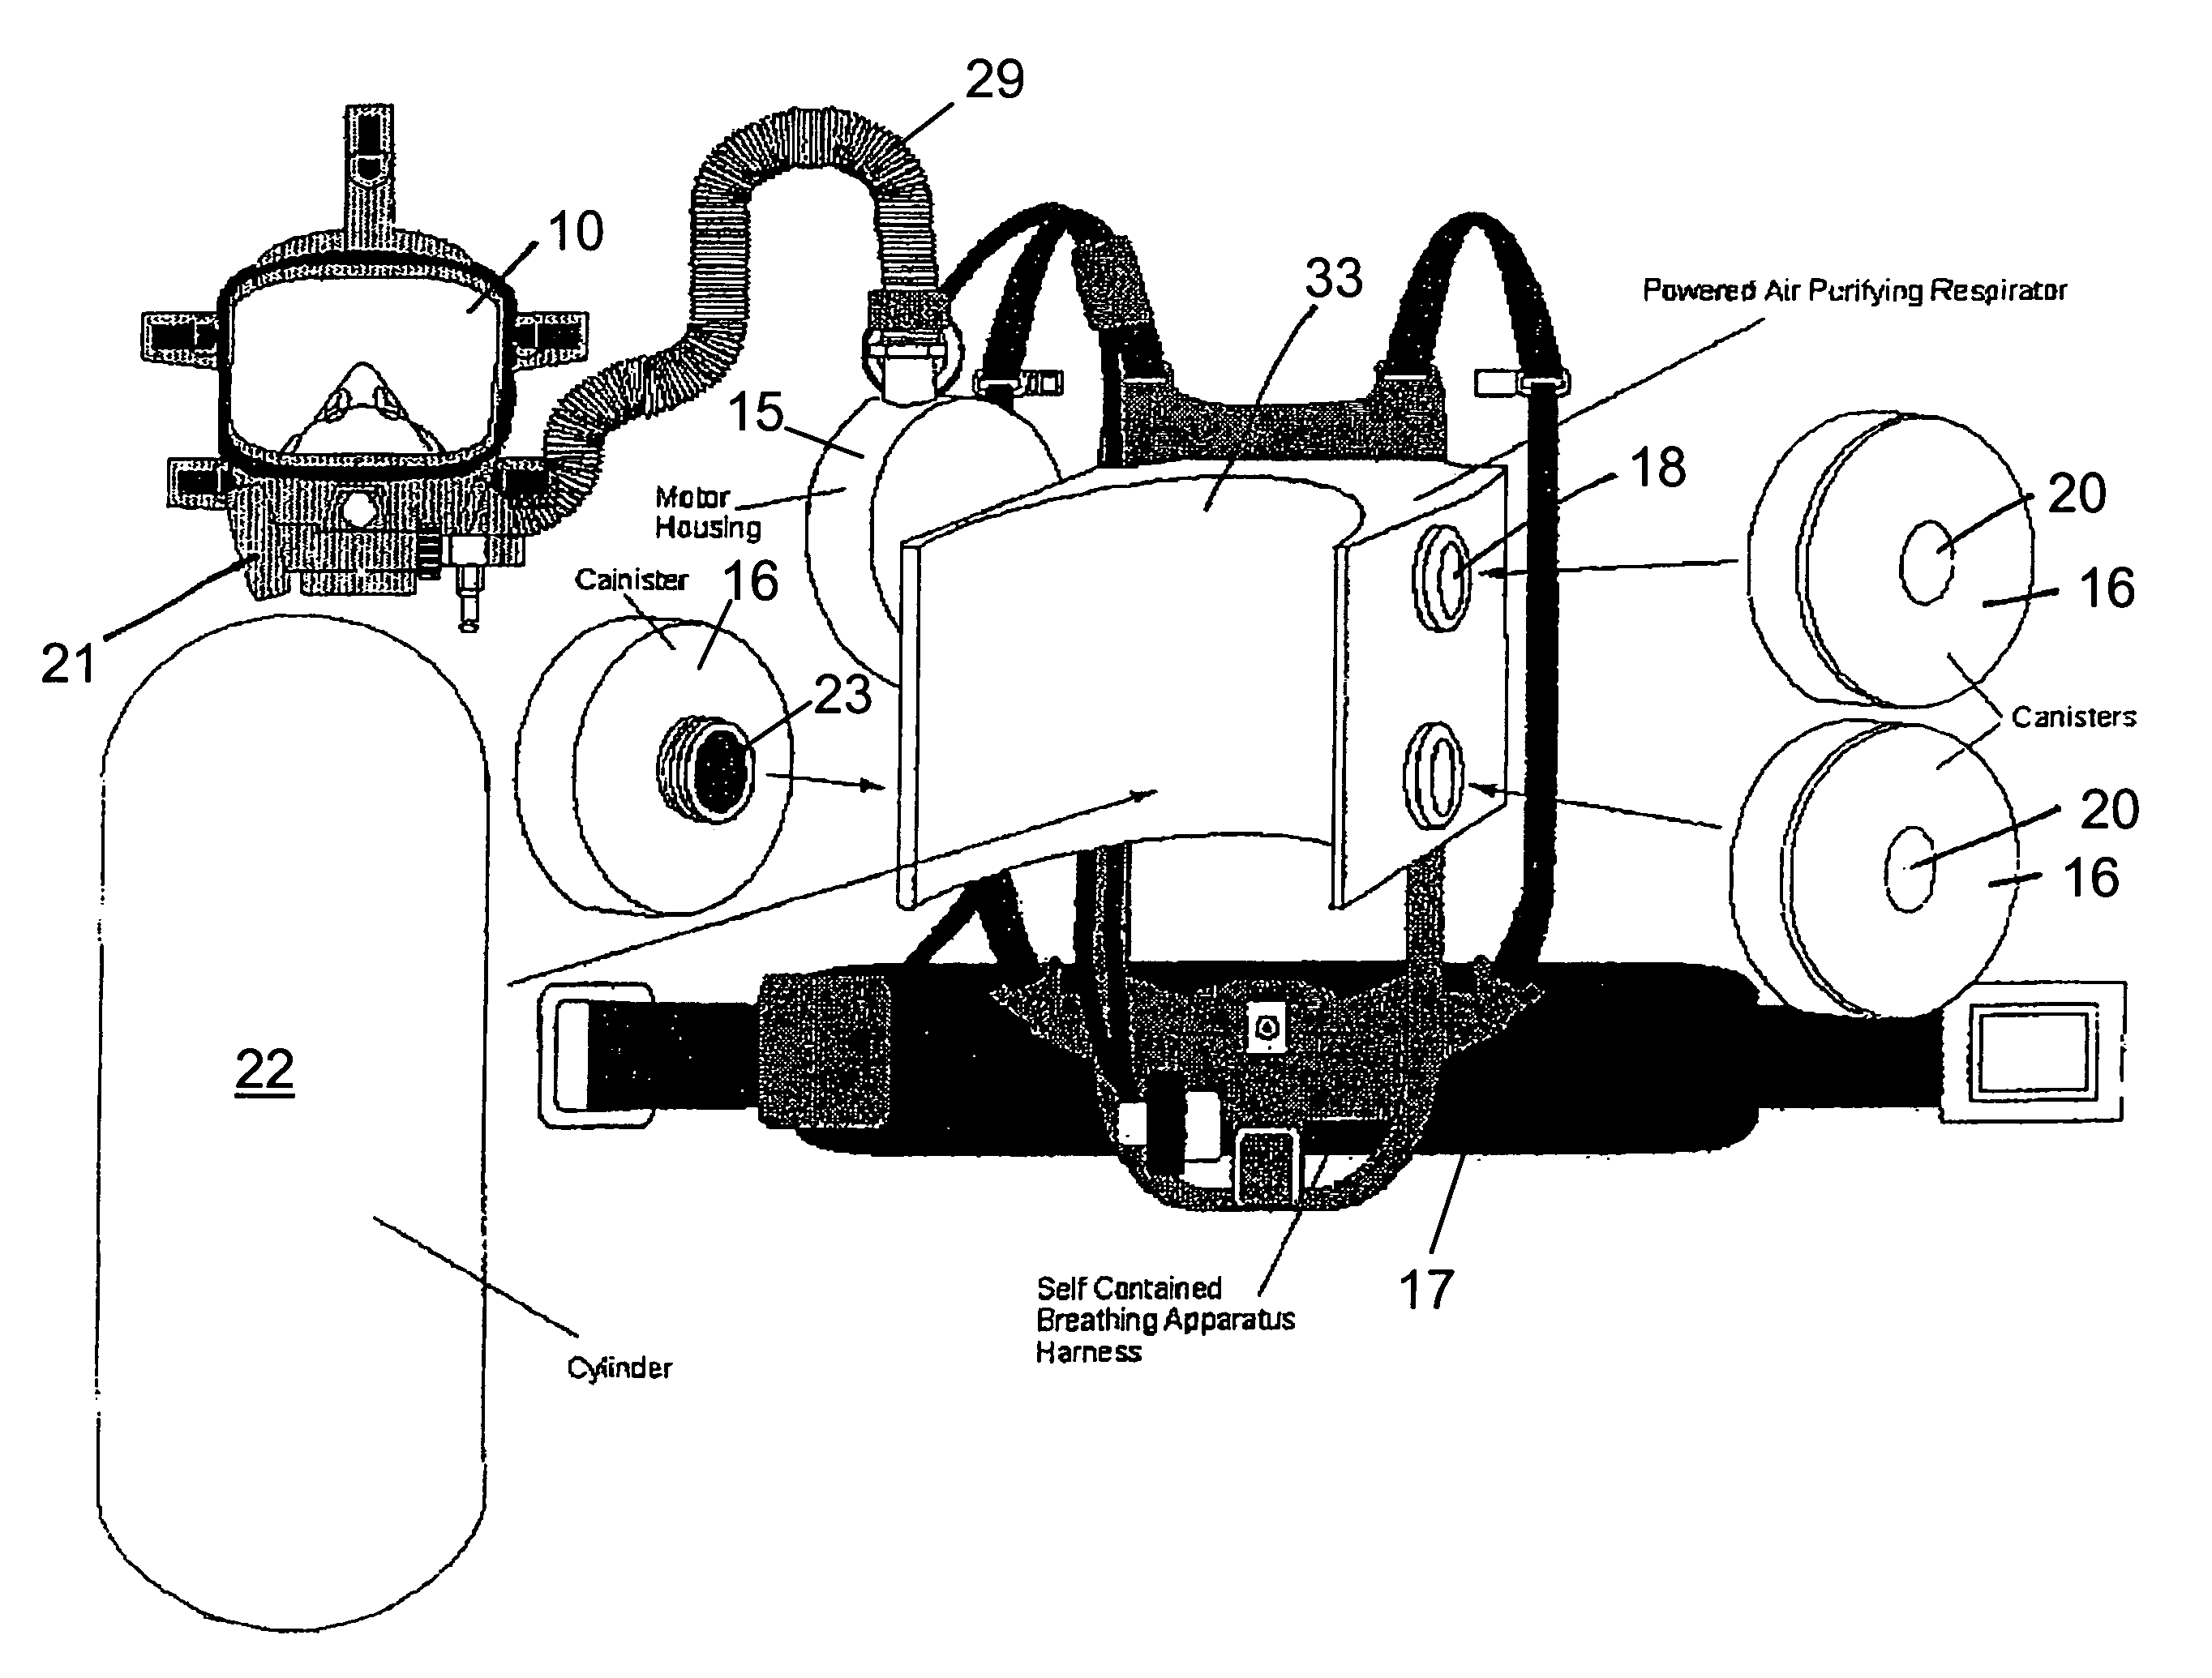 Patent Us7380551 - Breathing Apparatus